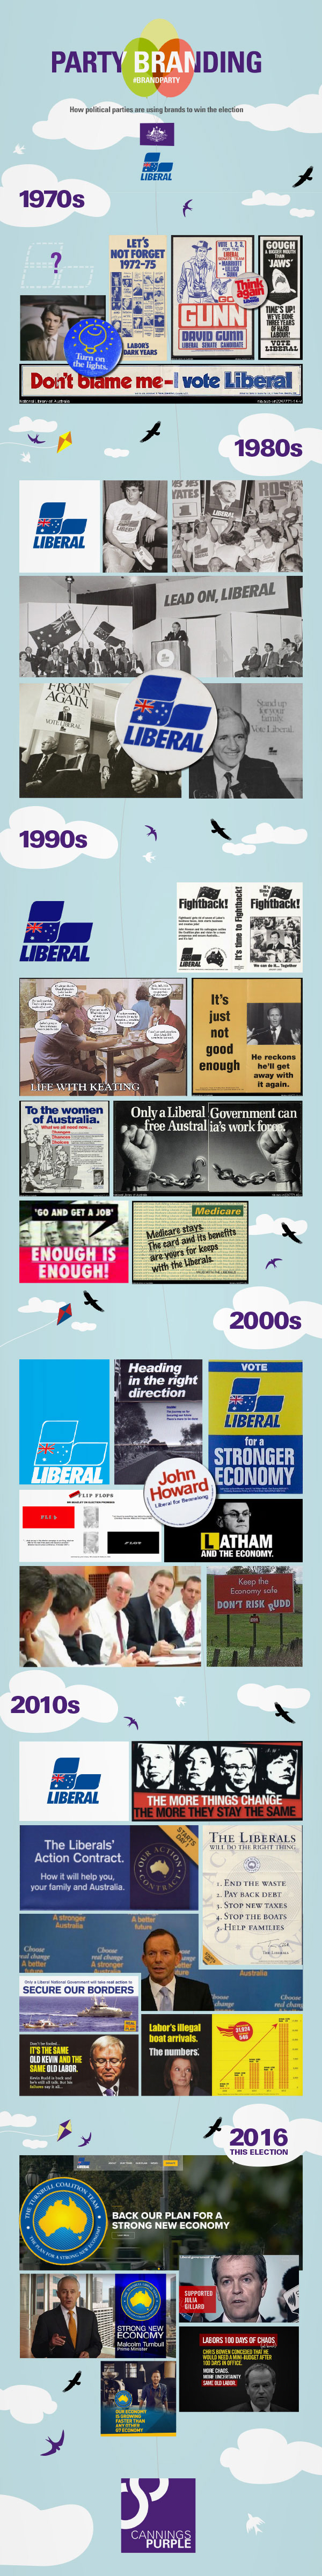 A short history of the Australian Liberal Party political branding.